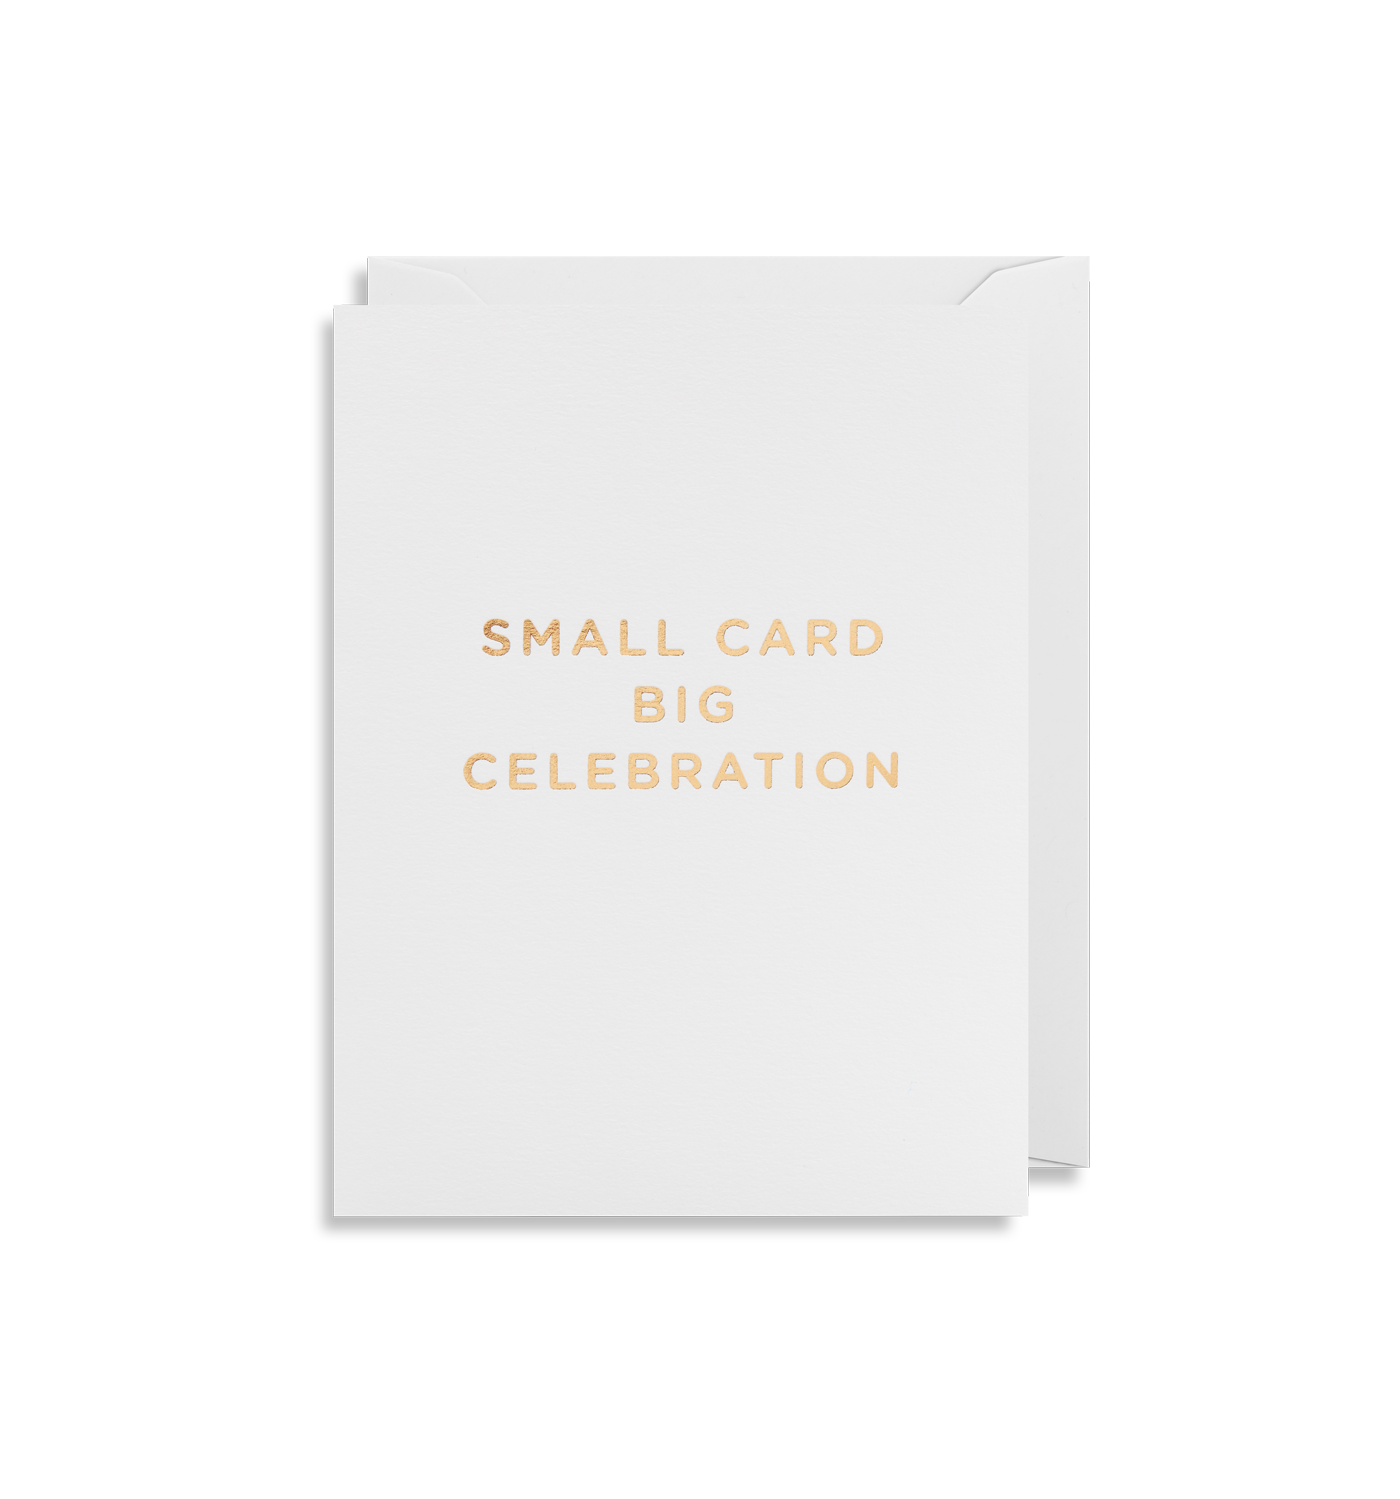 Small Card Big Celebration